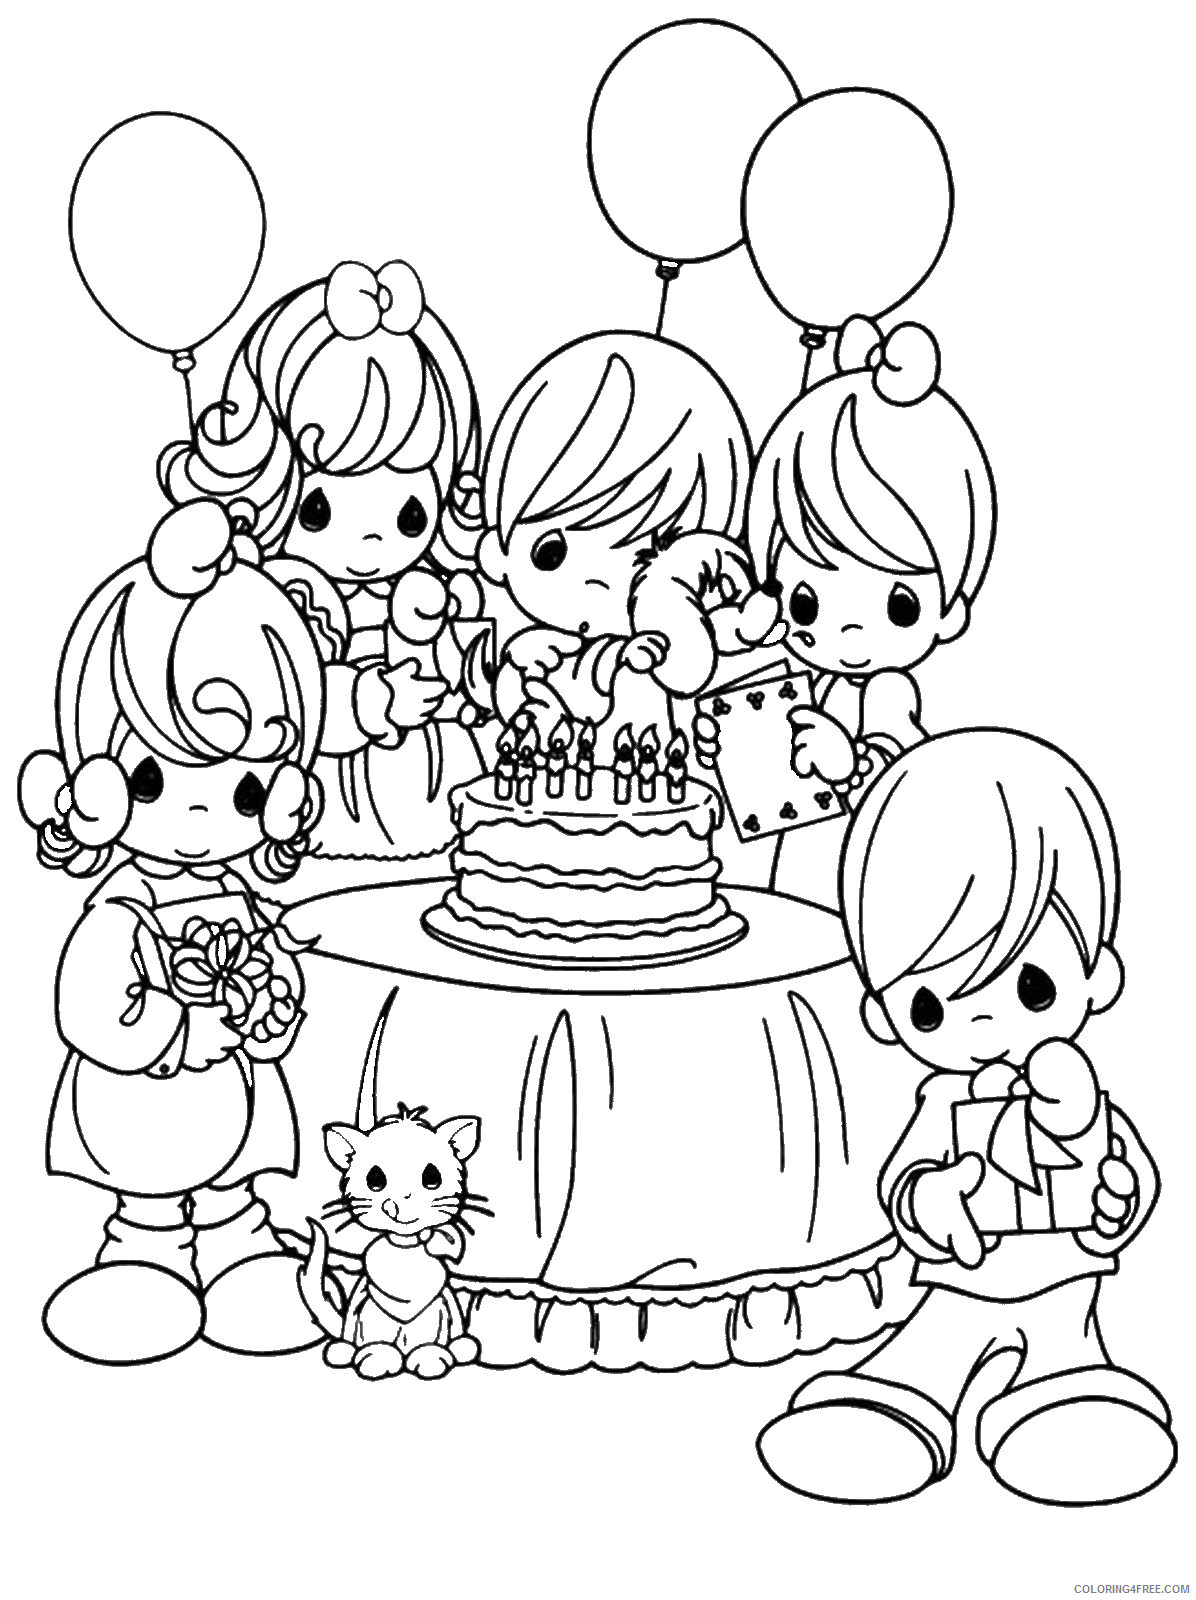 Birthday Coloring Pages Holiday birthday_cl_41 Printable 2021 0009 Coloring4free